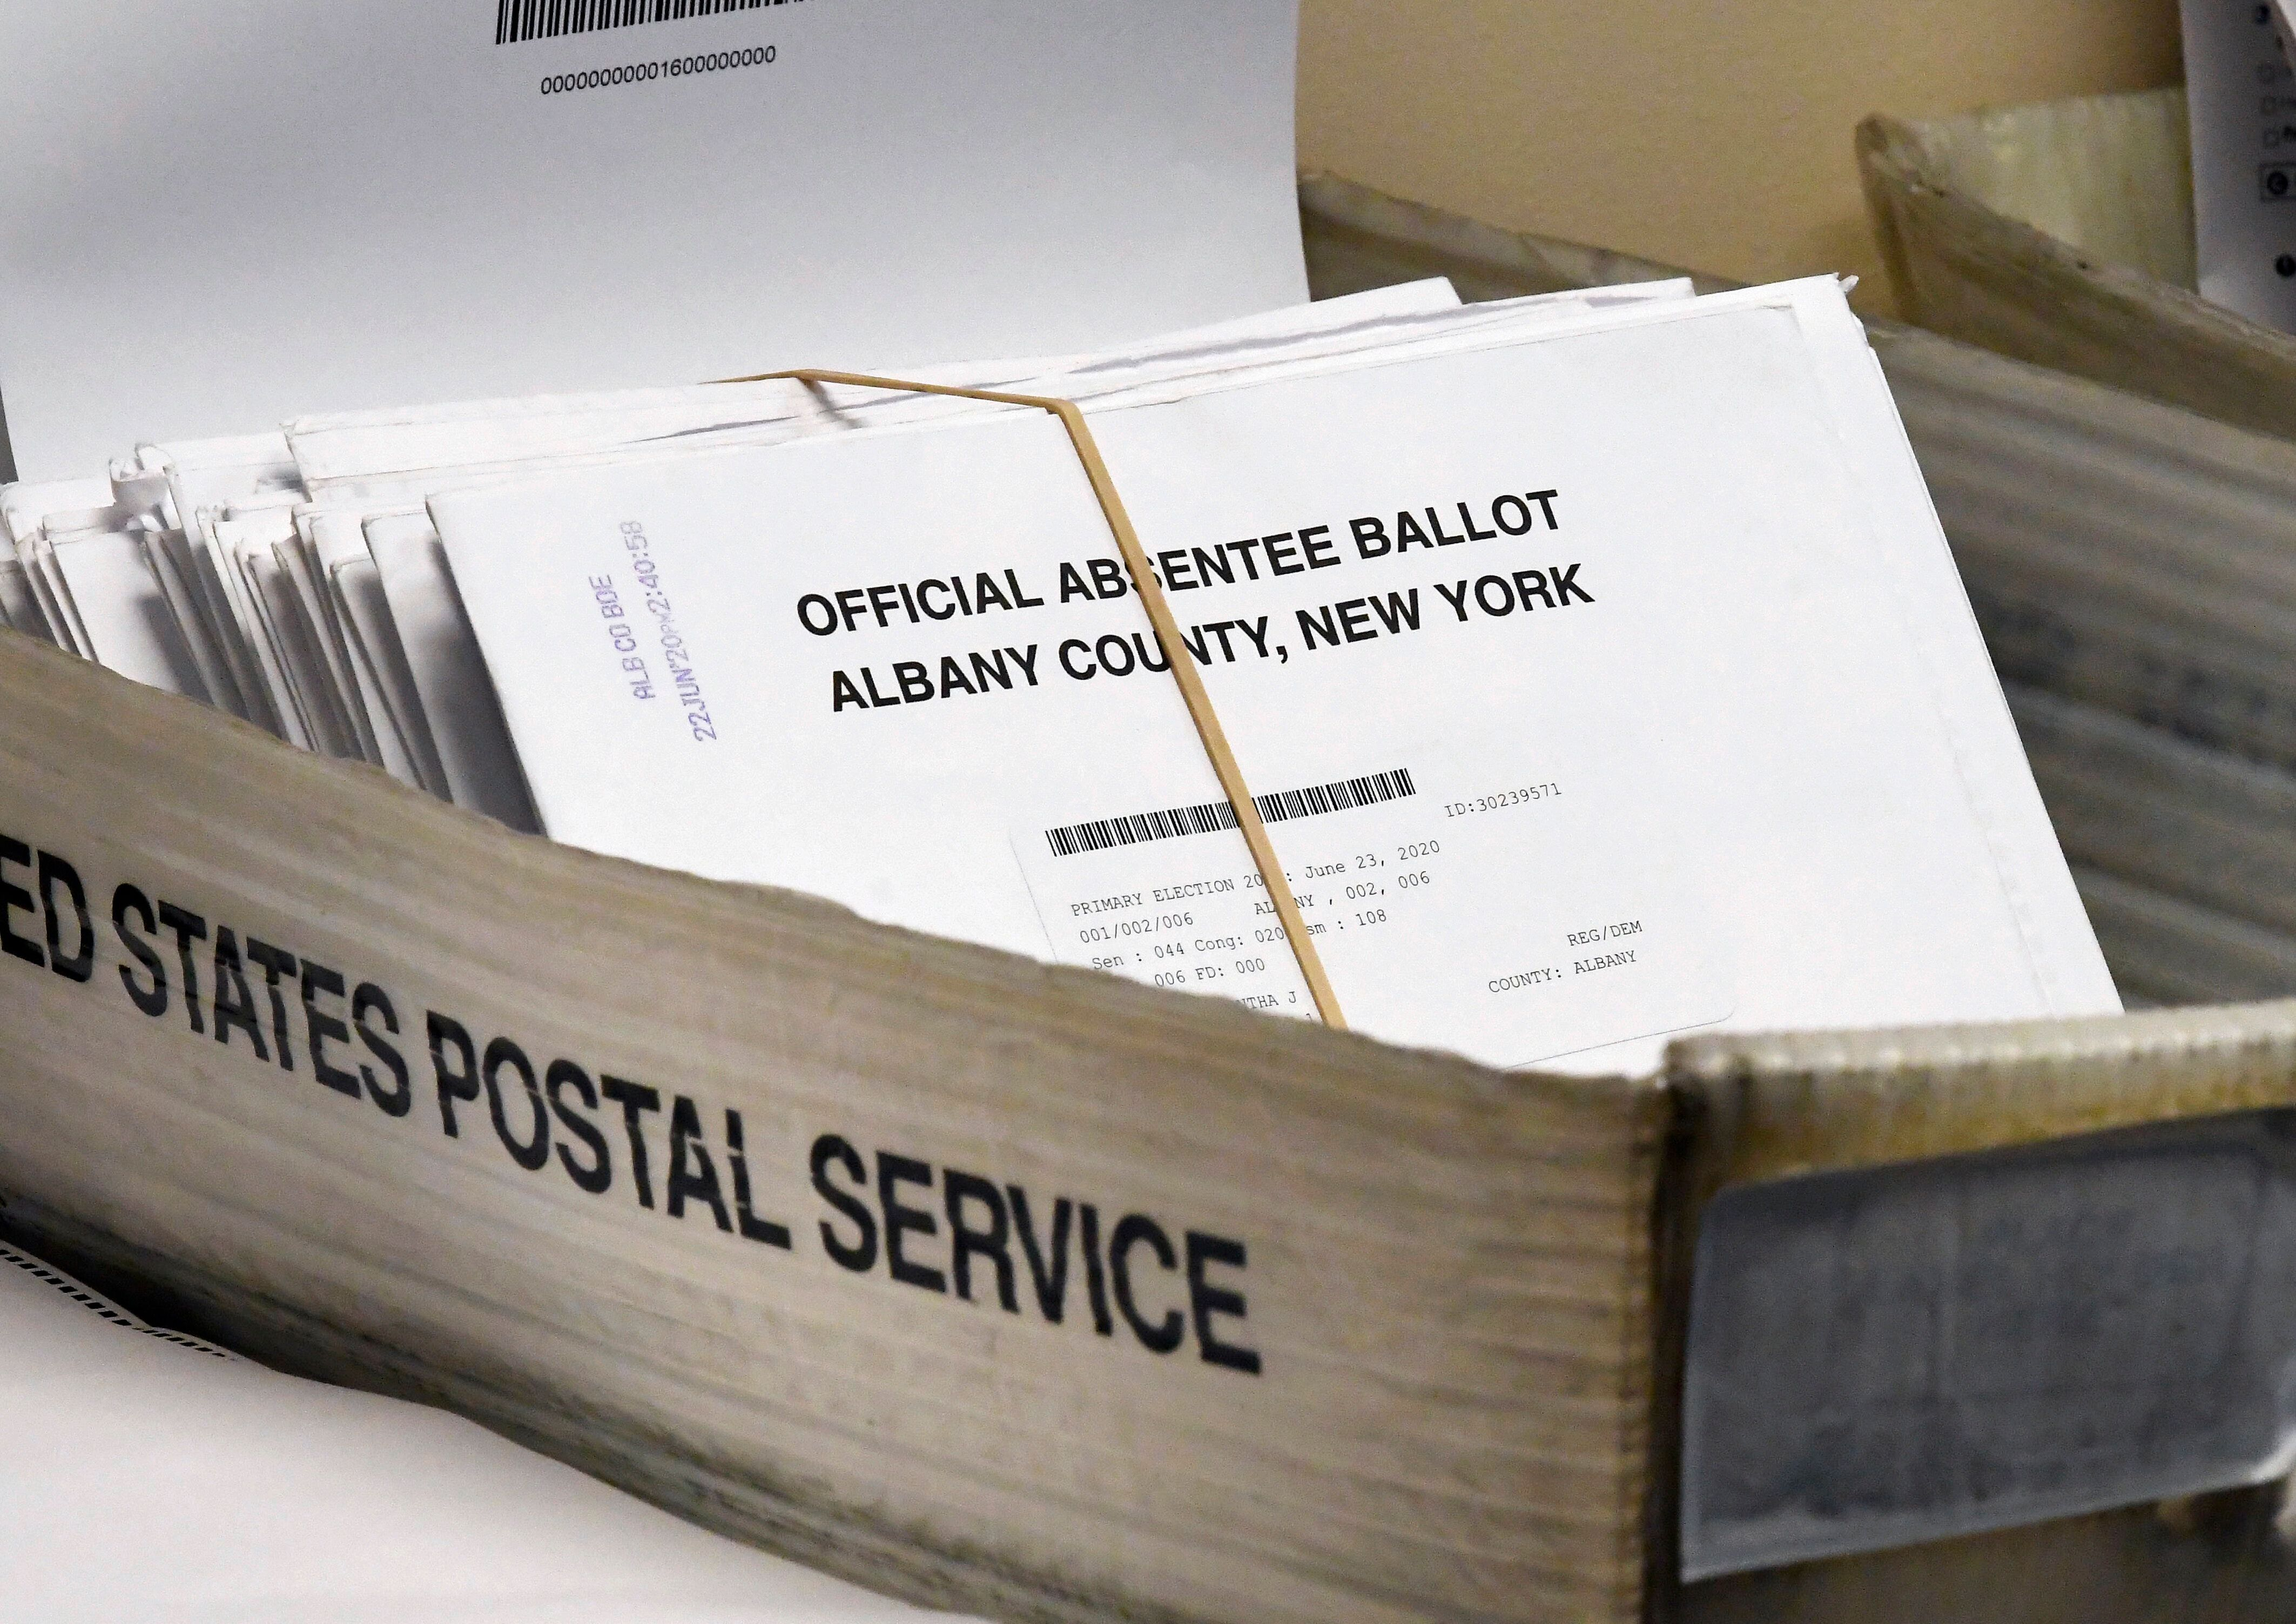 The number of rejected absentee ballots in 2020 primary elections reached almost 1% of all ballots cast — which is high